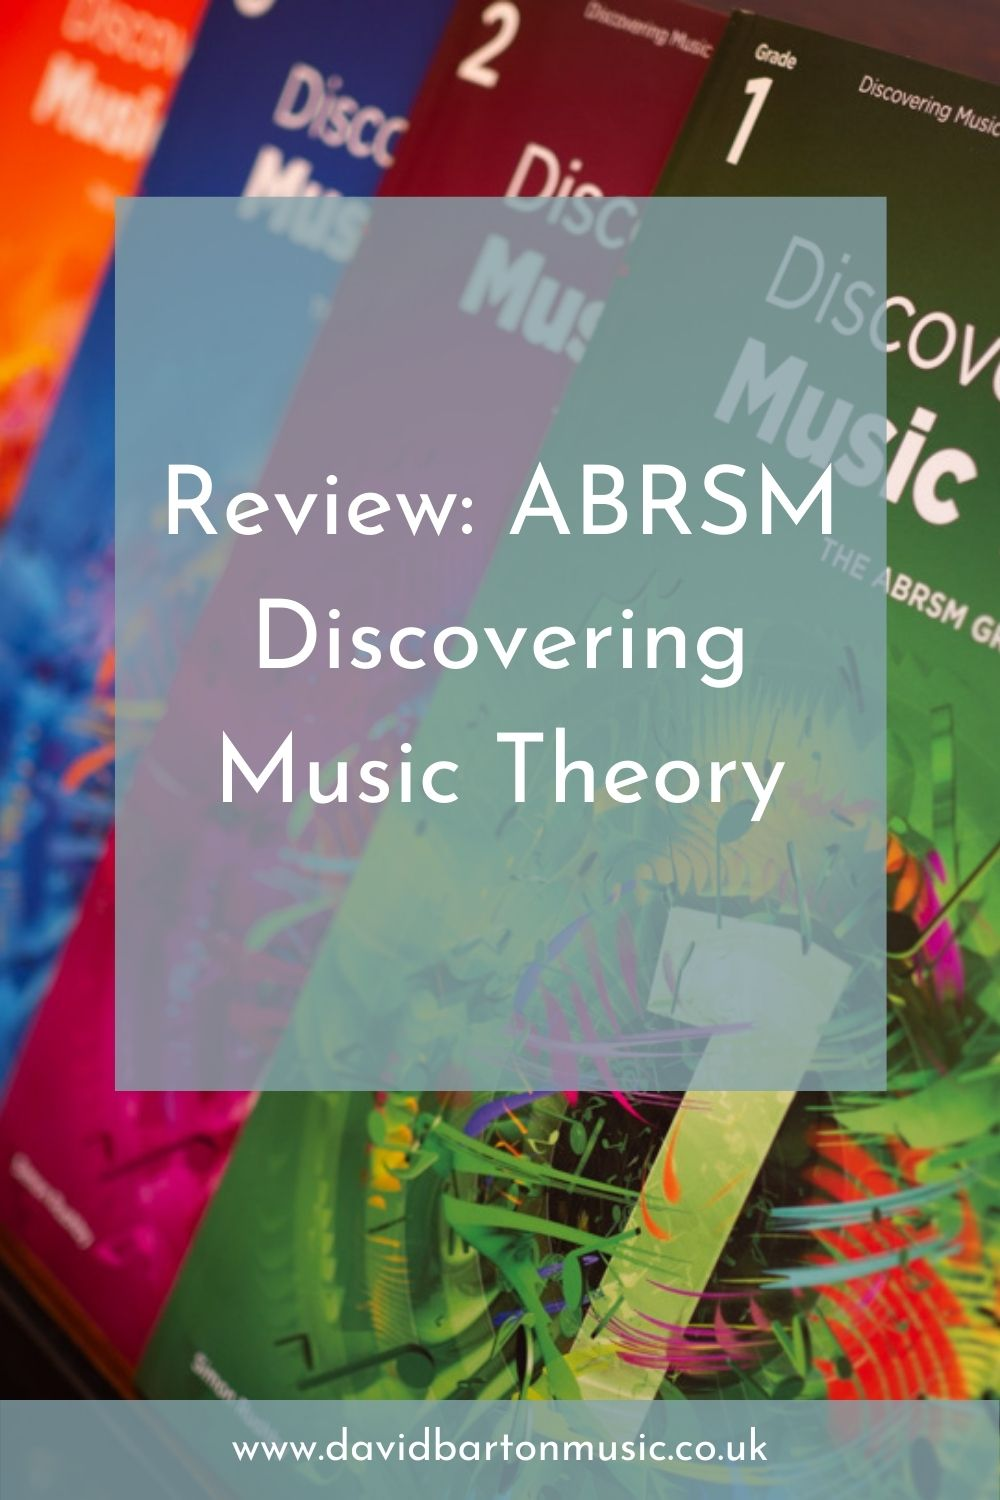 Review: ABRSM Discovering Music Theory - Pinterest Graphic